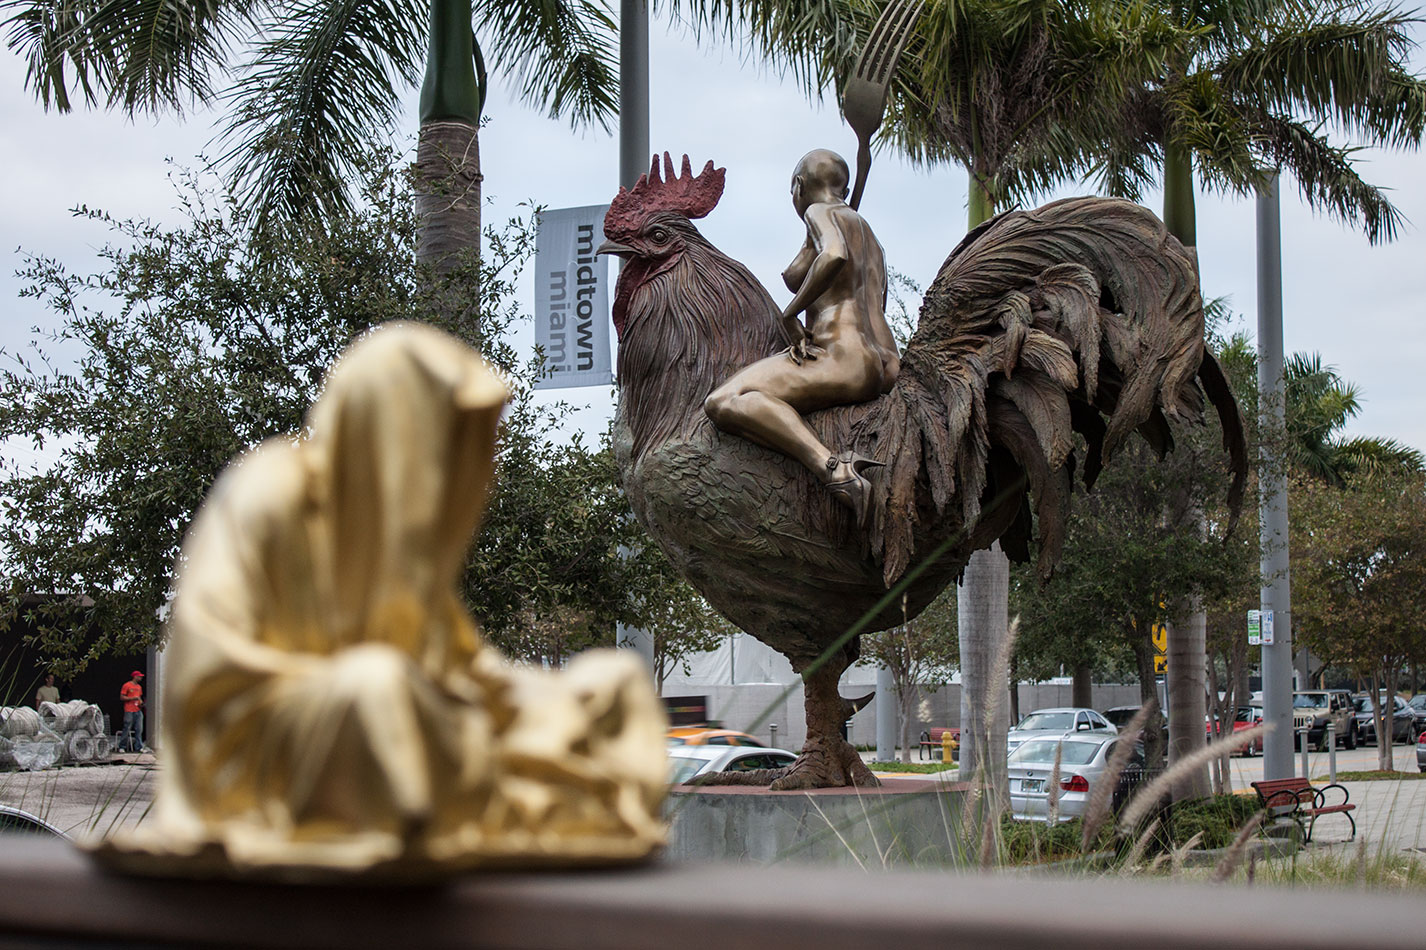 public-art-basel-miami-beach-fair-usa-florida-bass-museum-guardians-of-time-manfred-kili-kielnhofer-contemporary-fine-art-modern-arts-design-antiques-sculpture-6670